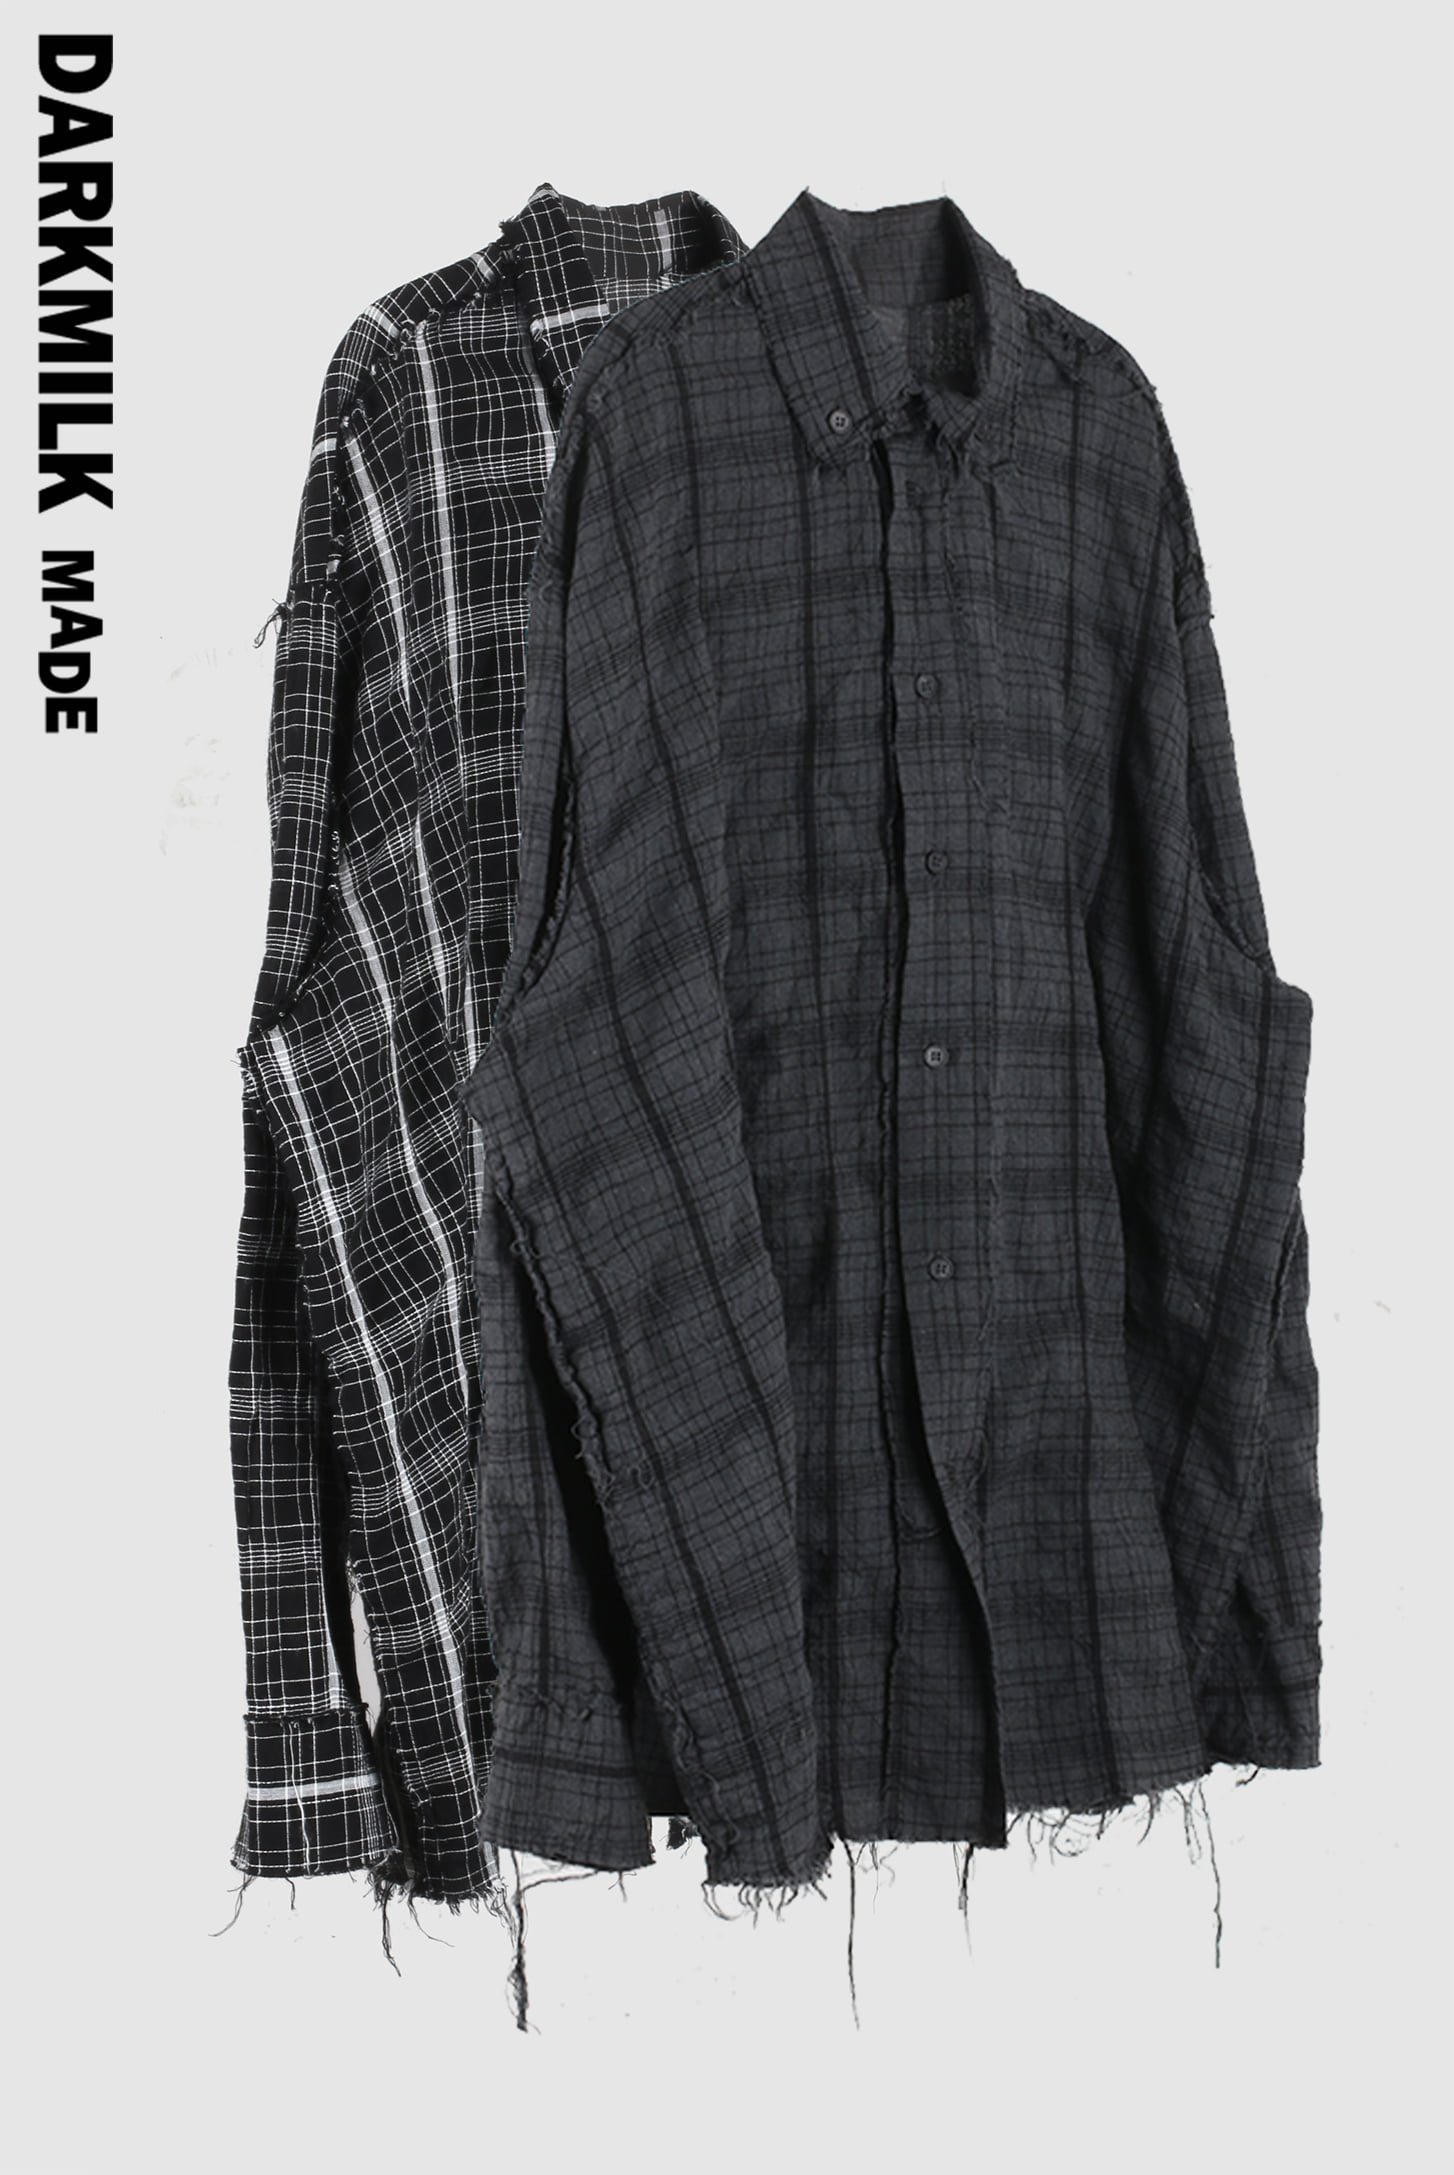 [MADE] 21 Raw_Edge Over Check_Shirt